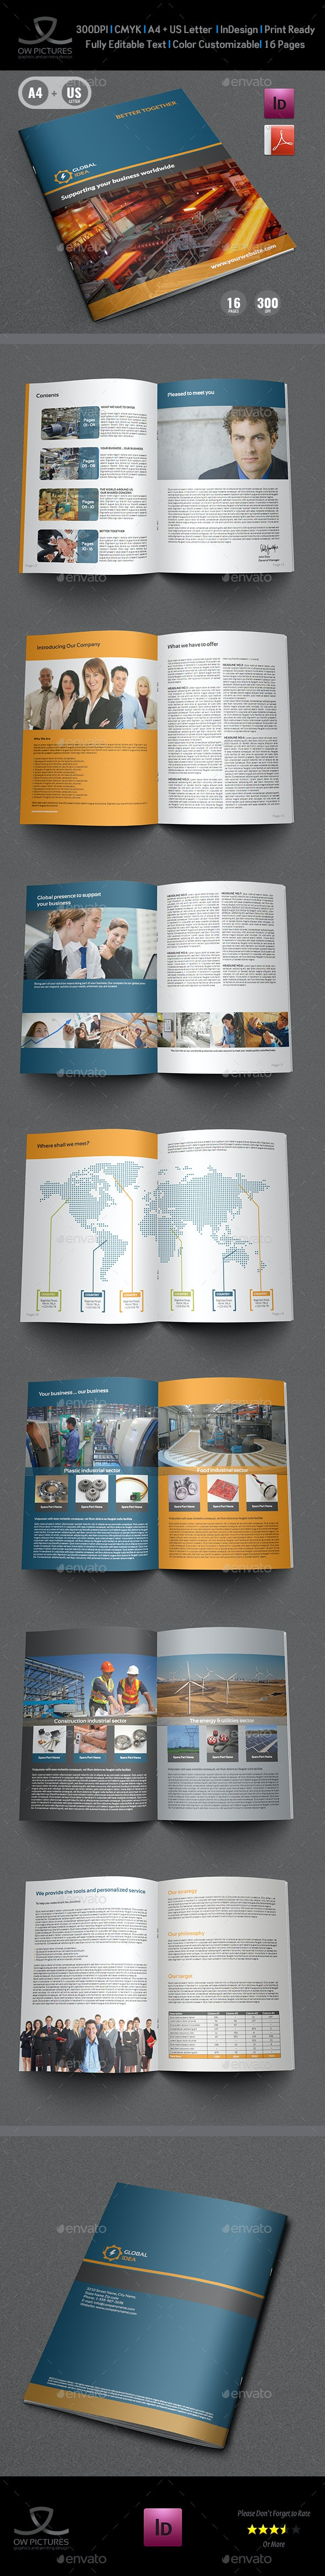 Company Profile Brochure Template Vol.2 -16 Pages - Corporate Brochures